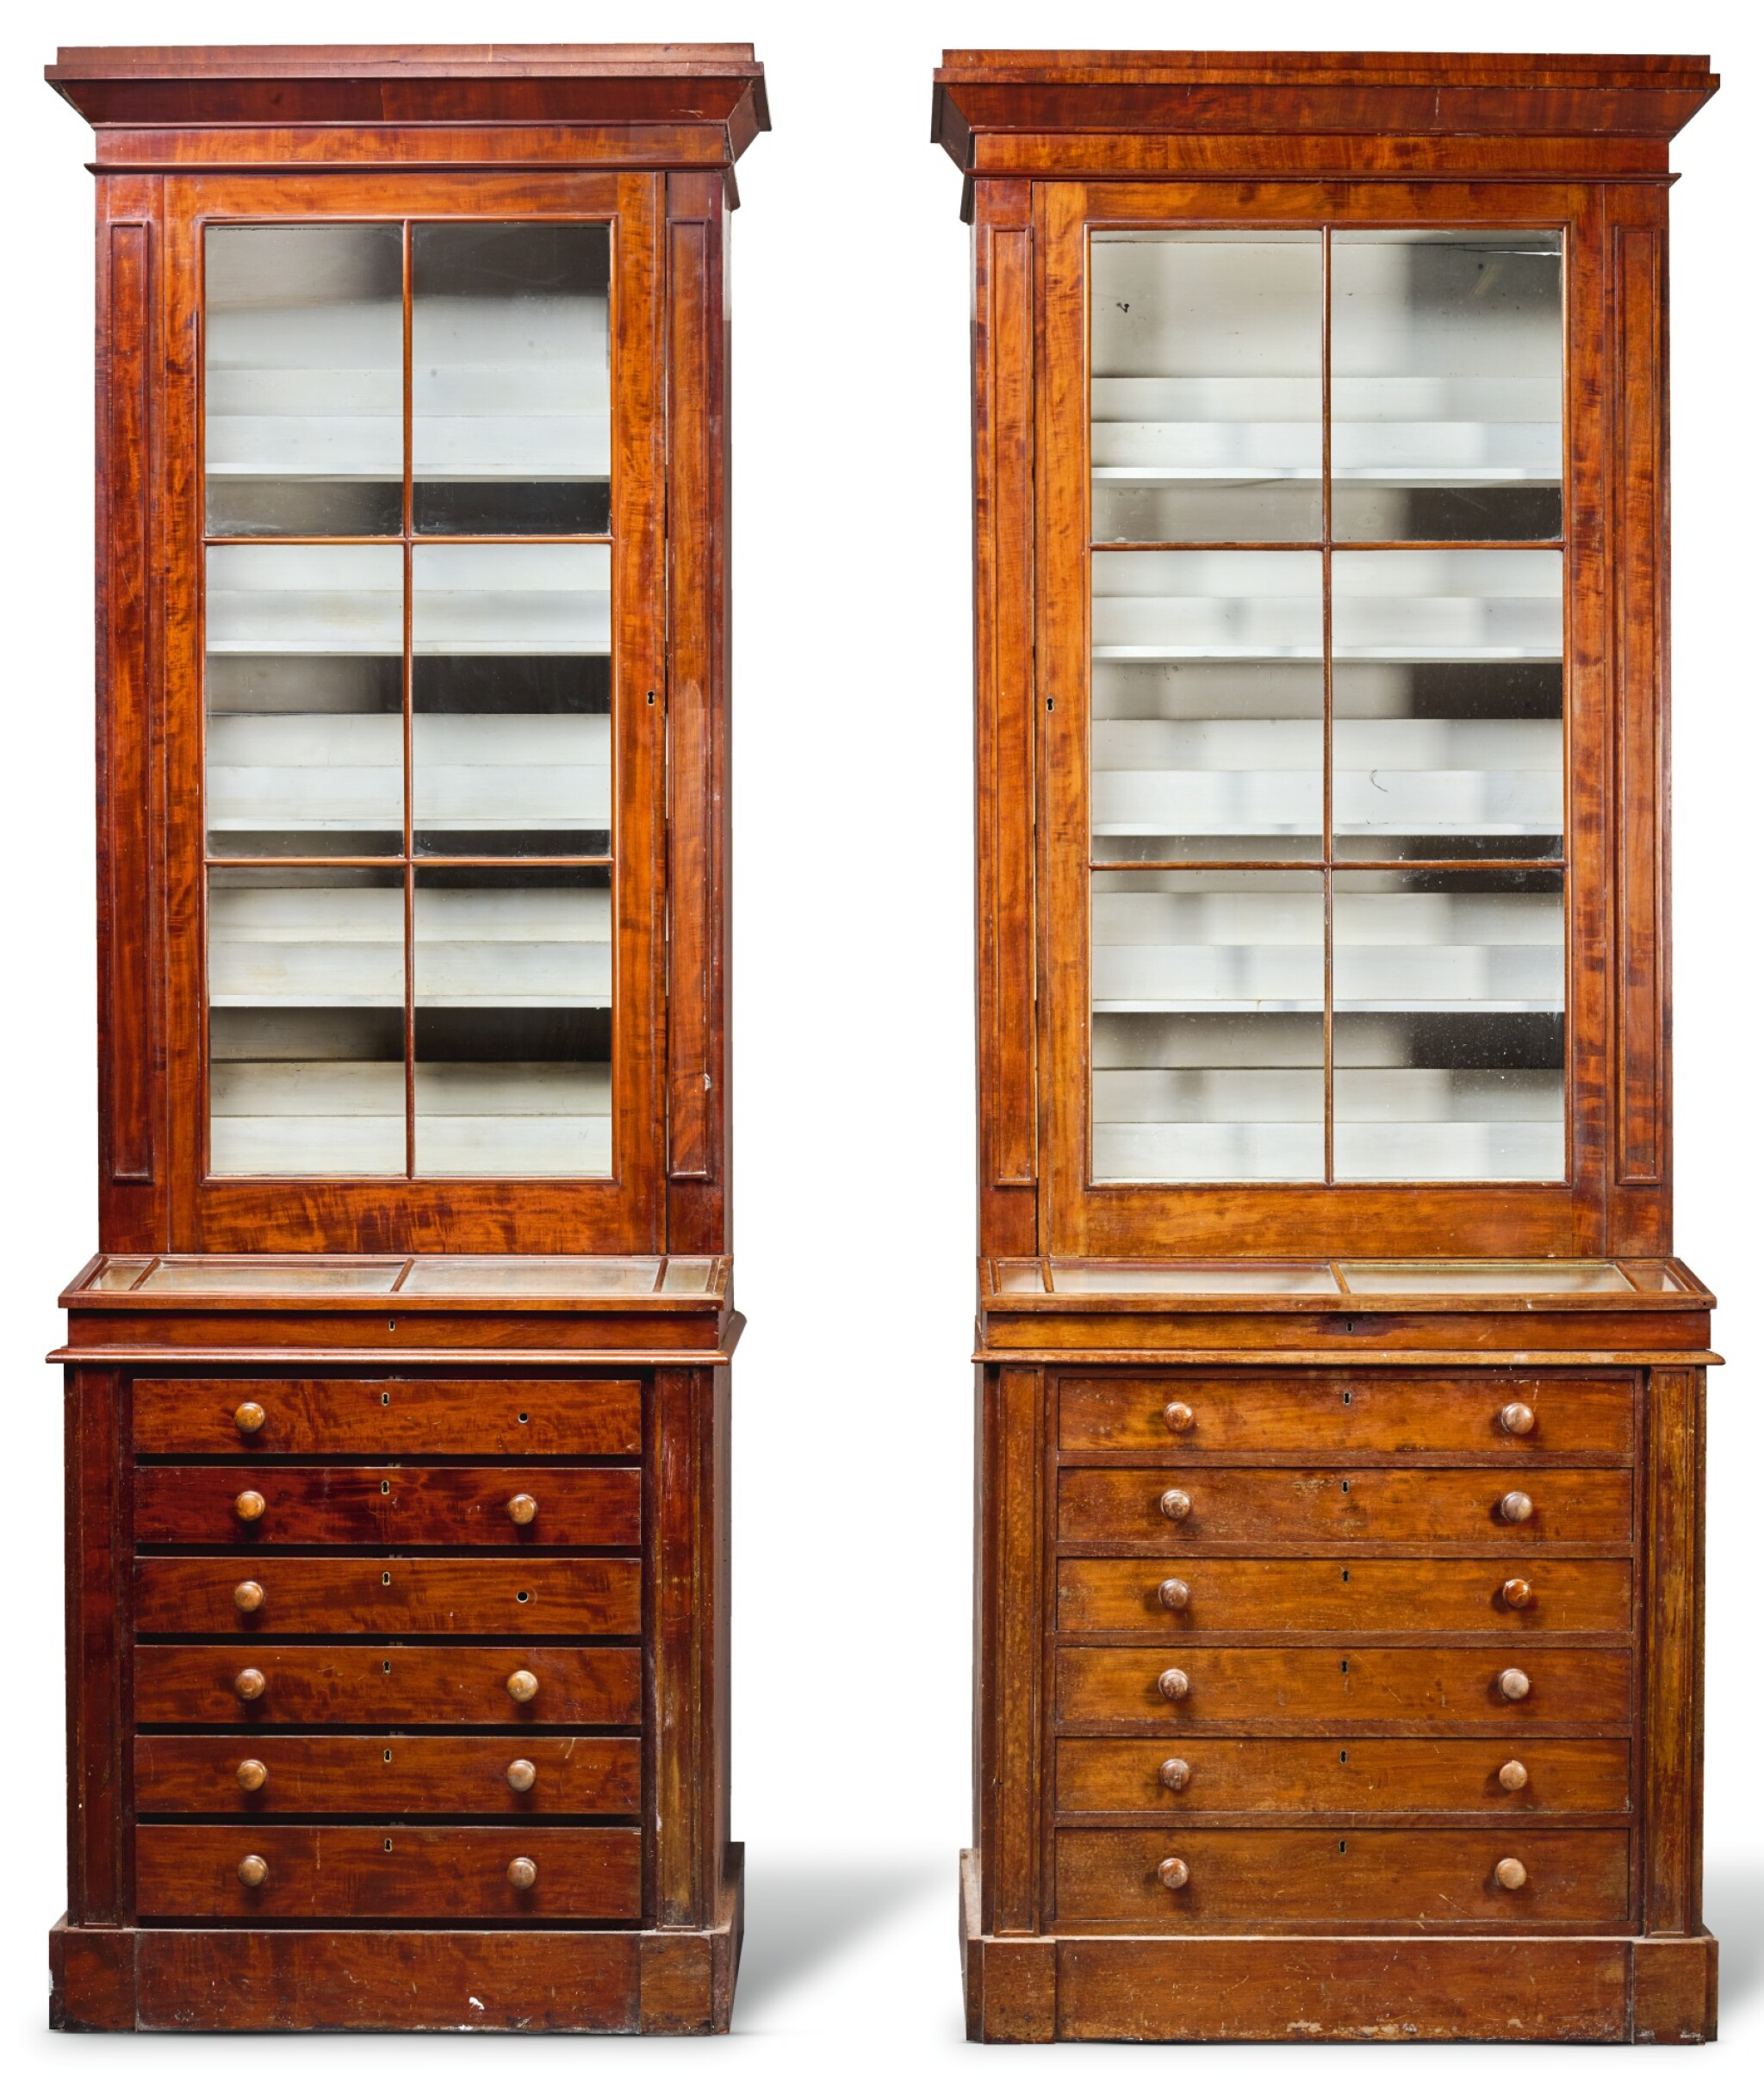 View full screen - View 1 of Lot 216. A NEAR PAIR OF WILLIAM IV MAHOGANY MUSEUM CABINETS, CIRCA 1835.